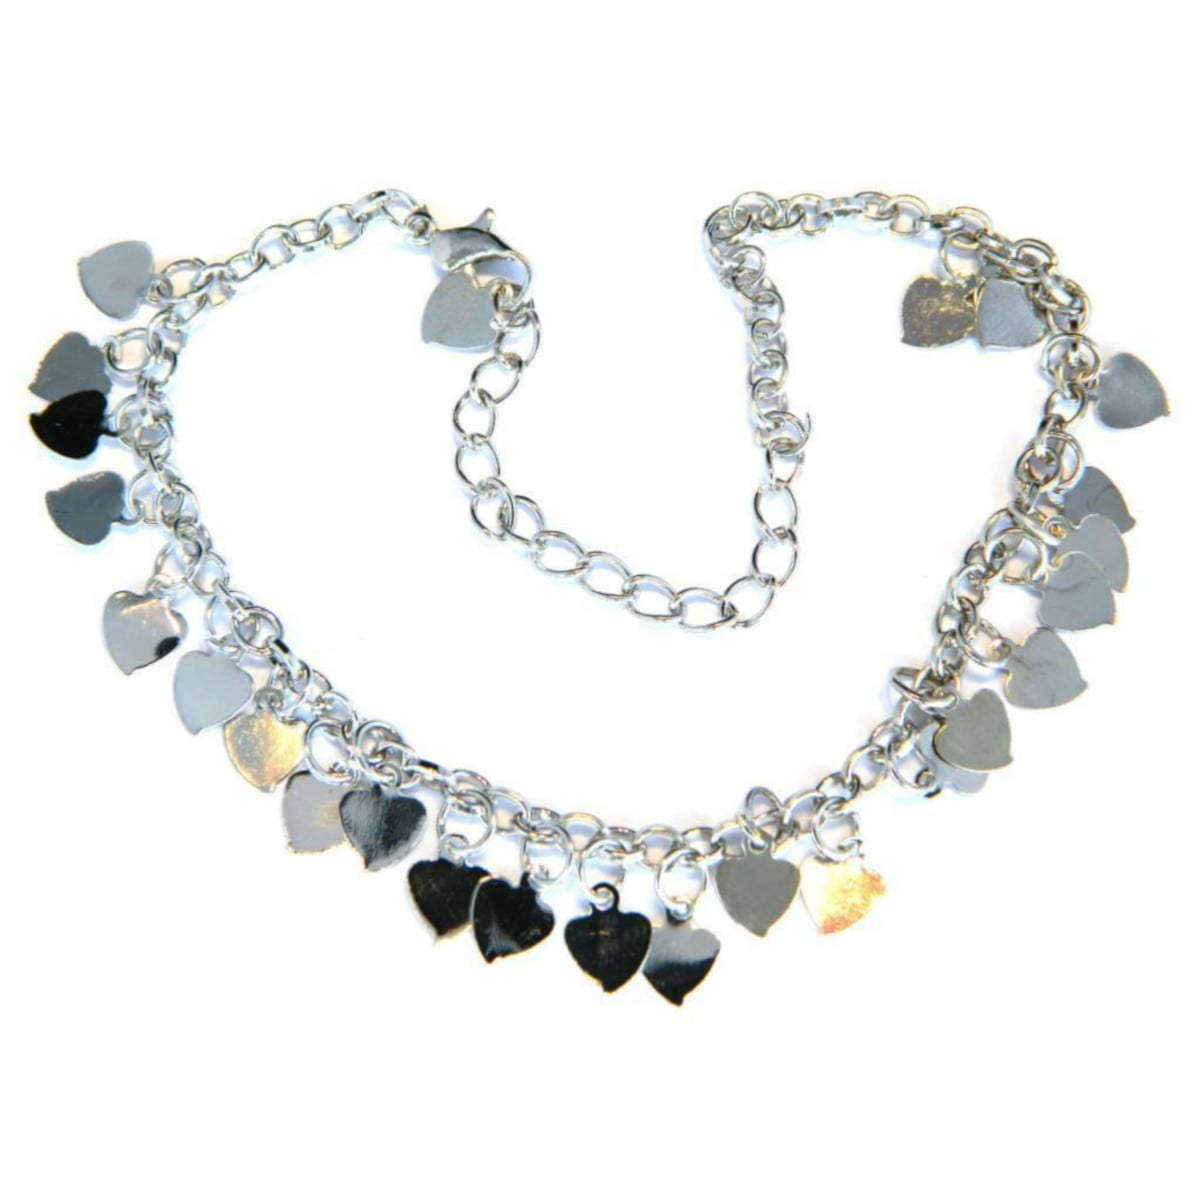 Heart charm anklet in silver plate